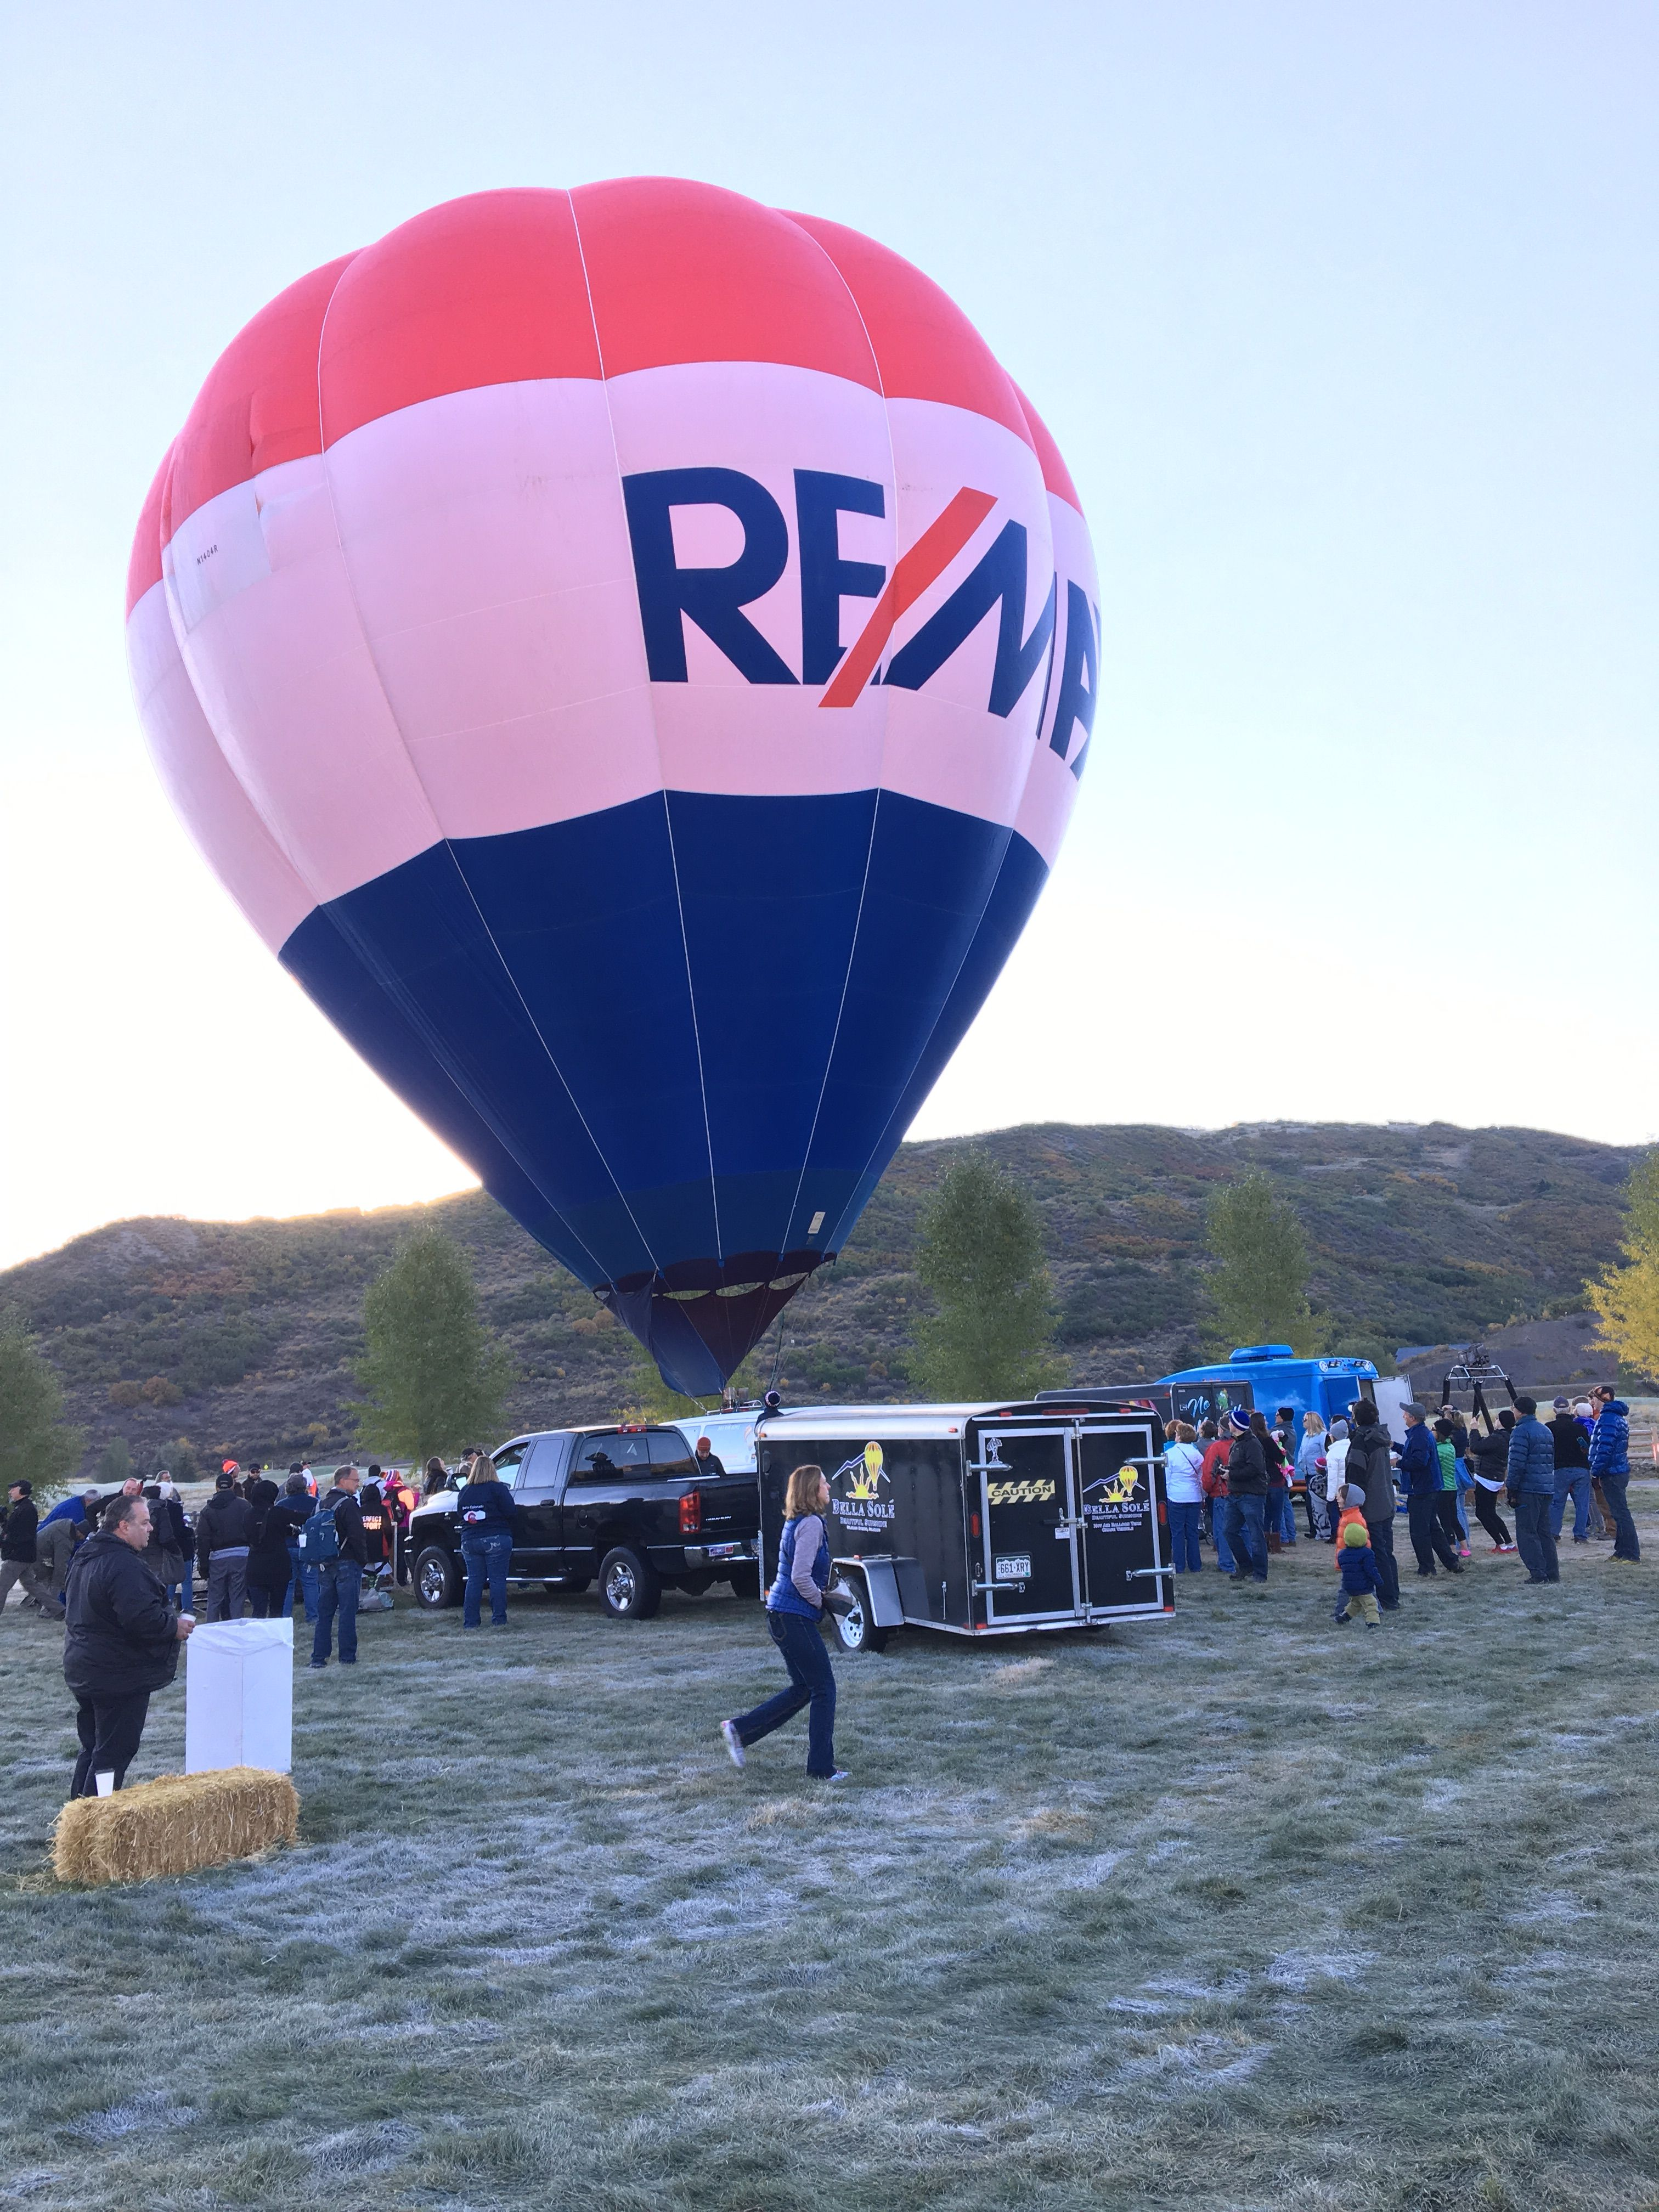 The RE/MAX Balloon in Aspen, CO  Courtesy photo, Martin Coover of